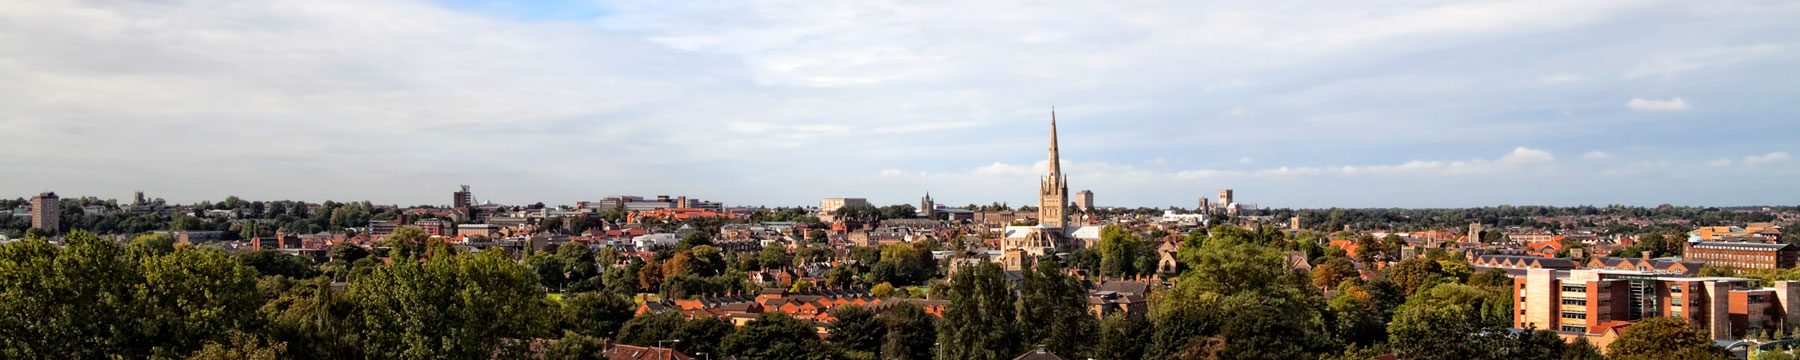 Great views of Norwich Cathedral and the surrounding city